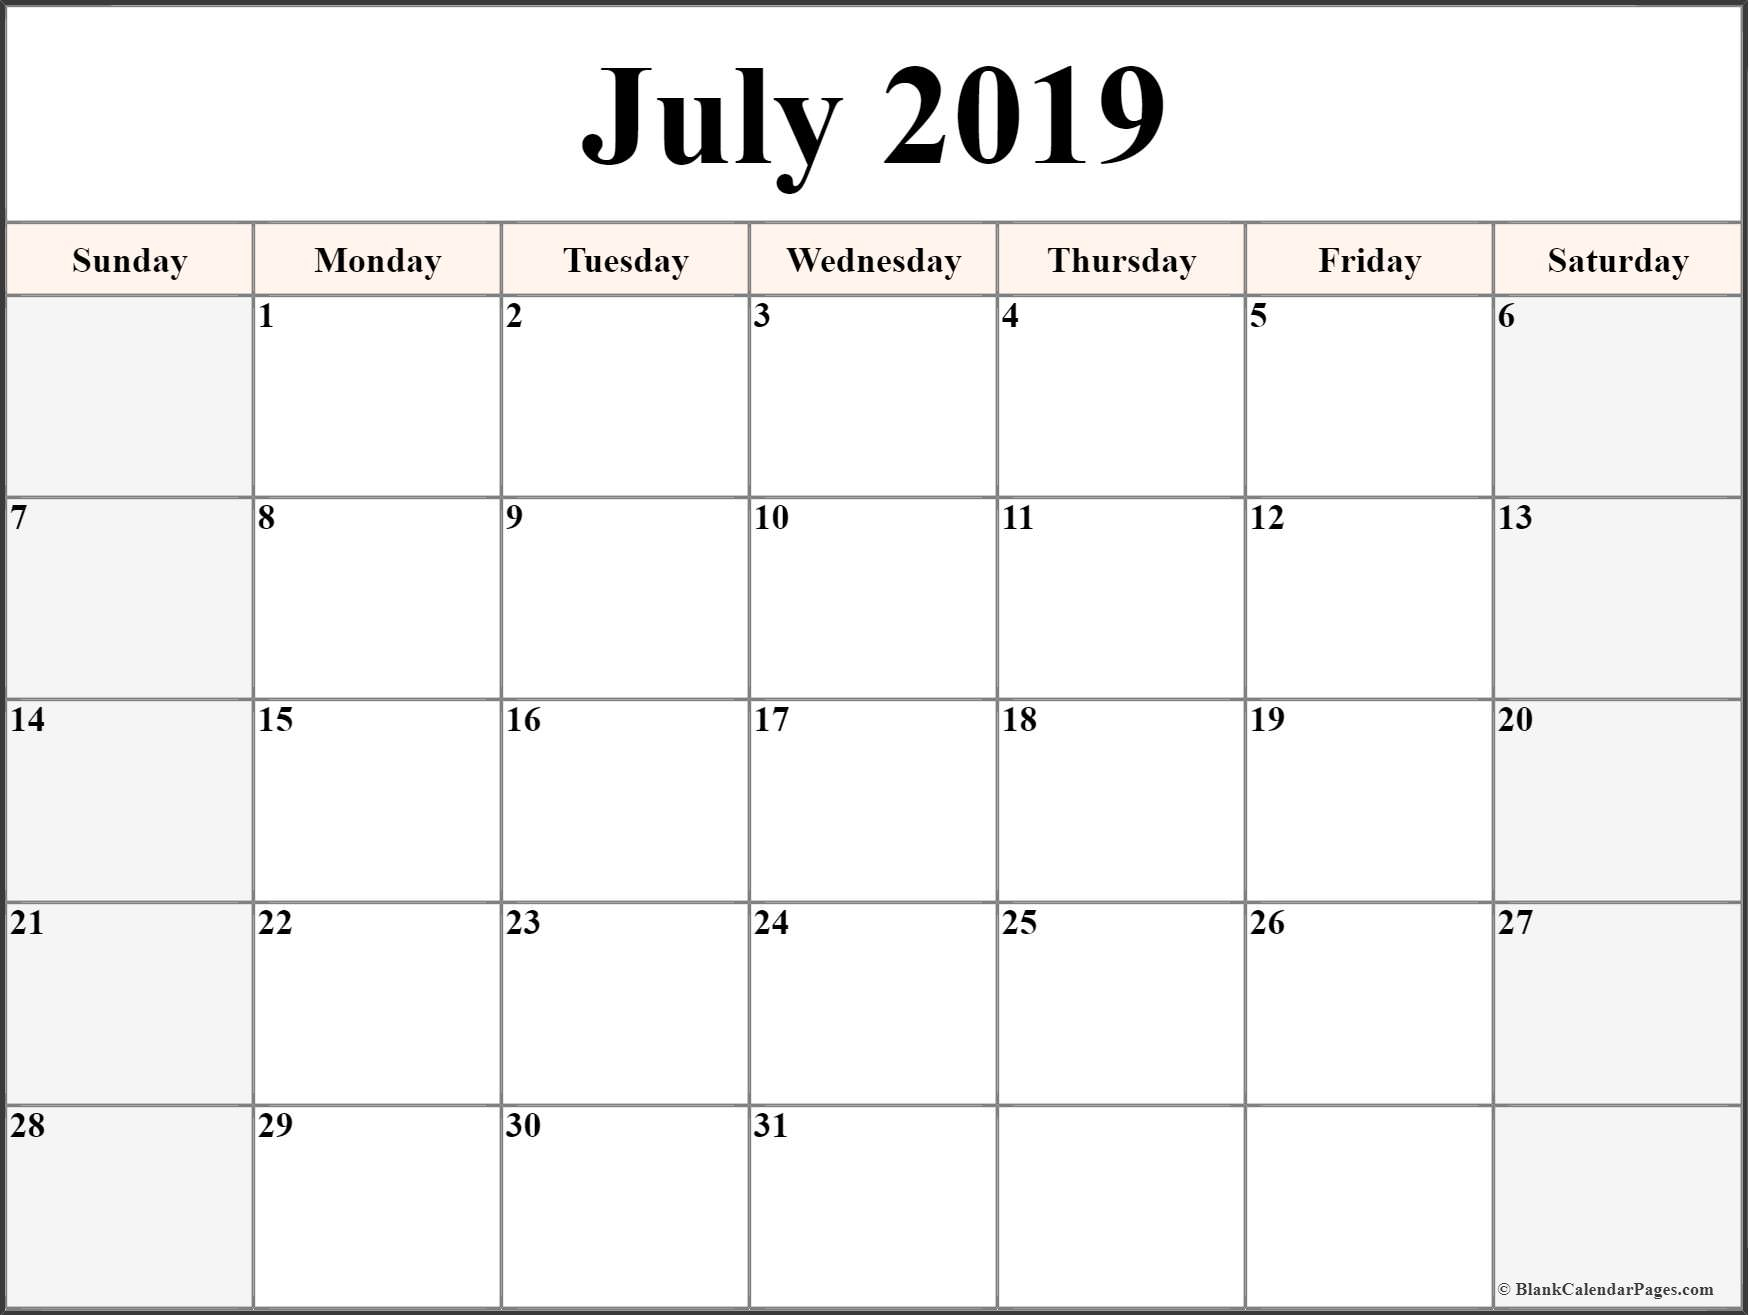 July 2019 Calendar | Free Printable Monthly Calendars throughout Full Sheet November Calendar Template